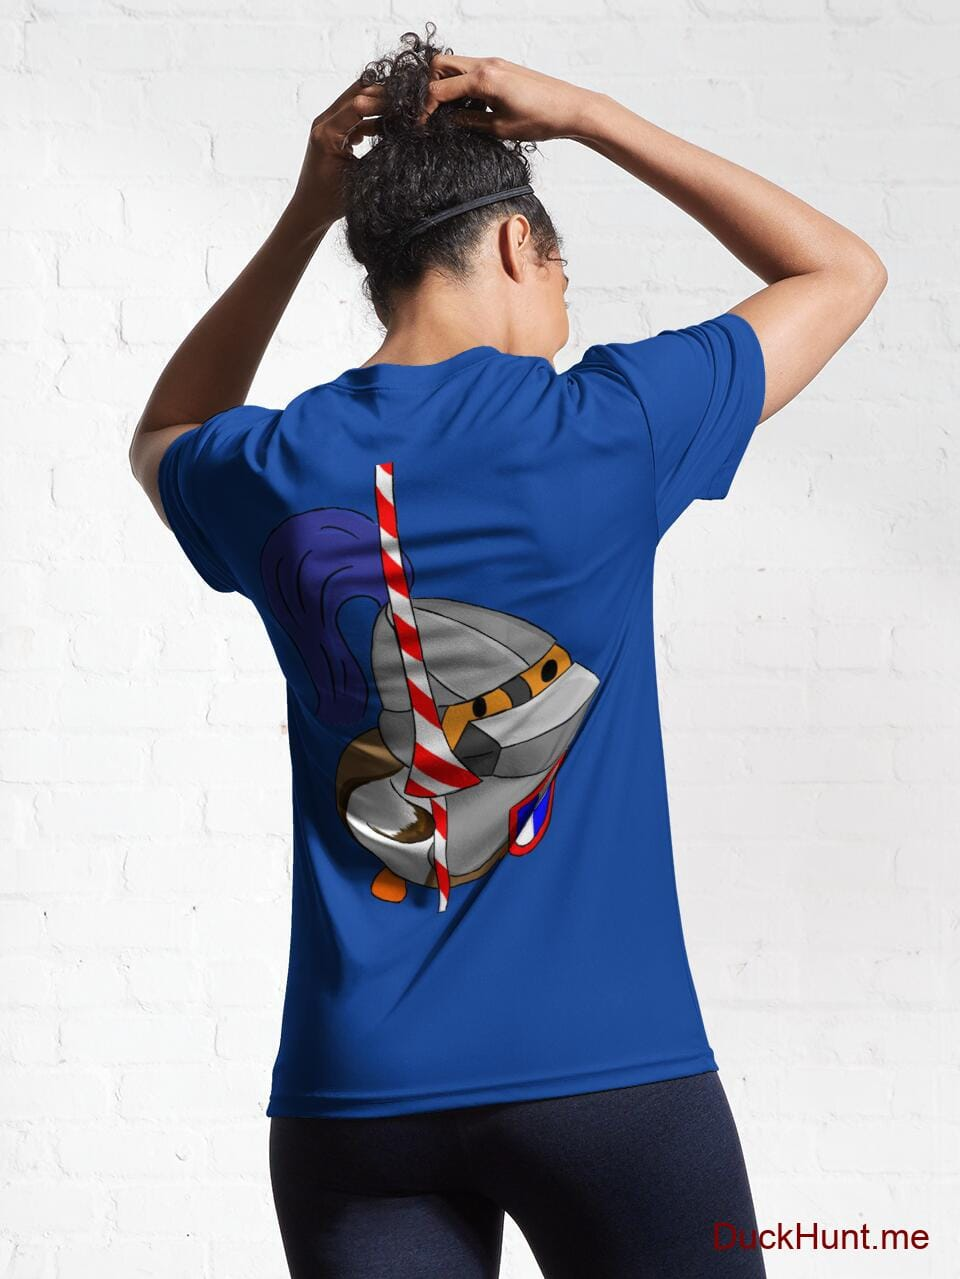 Armored Duck Royal Blue Active T-Shirt (Back printed) alternative image 5